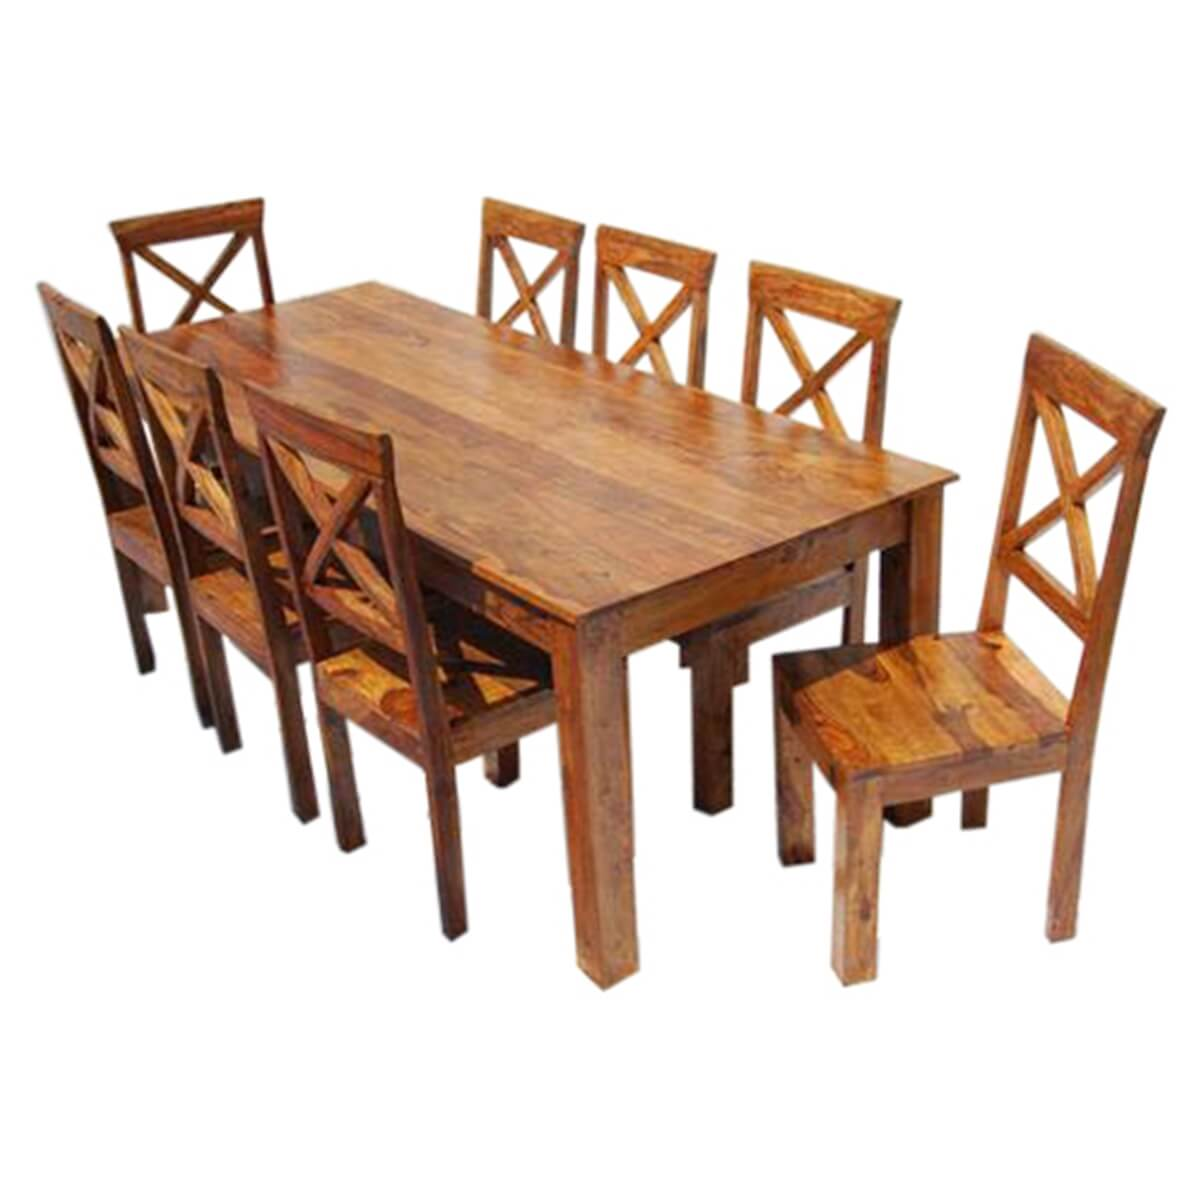 Large Rustic Oklahoma Solid Wood Dining Table amp Chair Set : 13532 from www.sierralivingconcepts.com size 1200 x 1200 jpeg 311kB